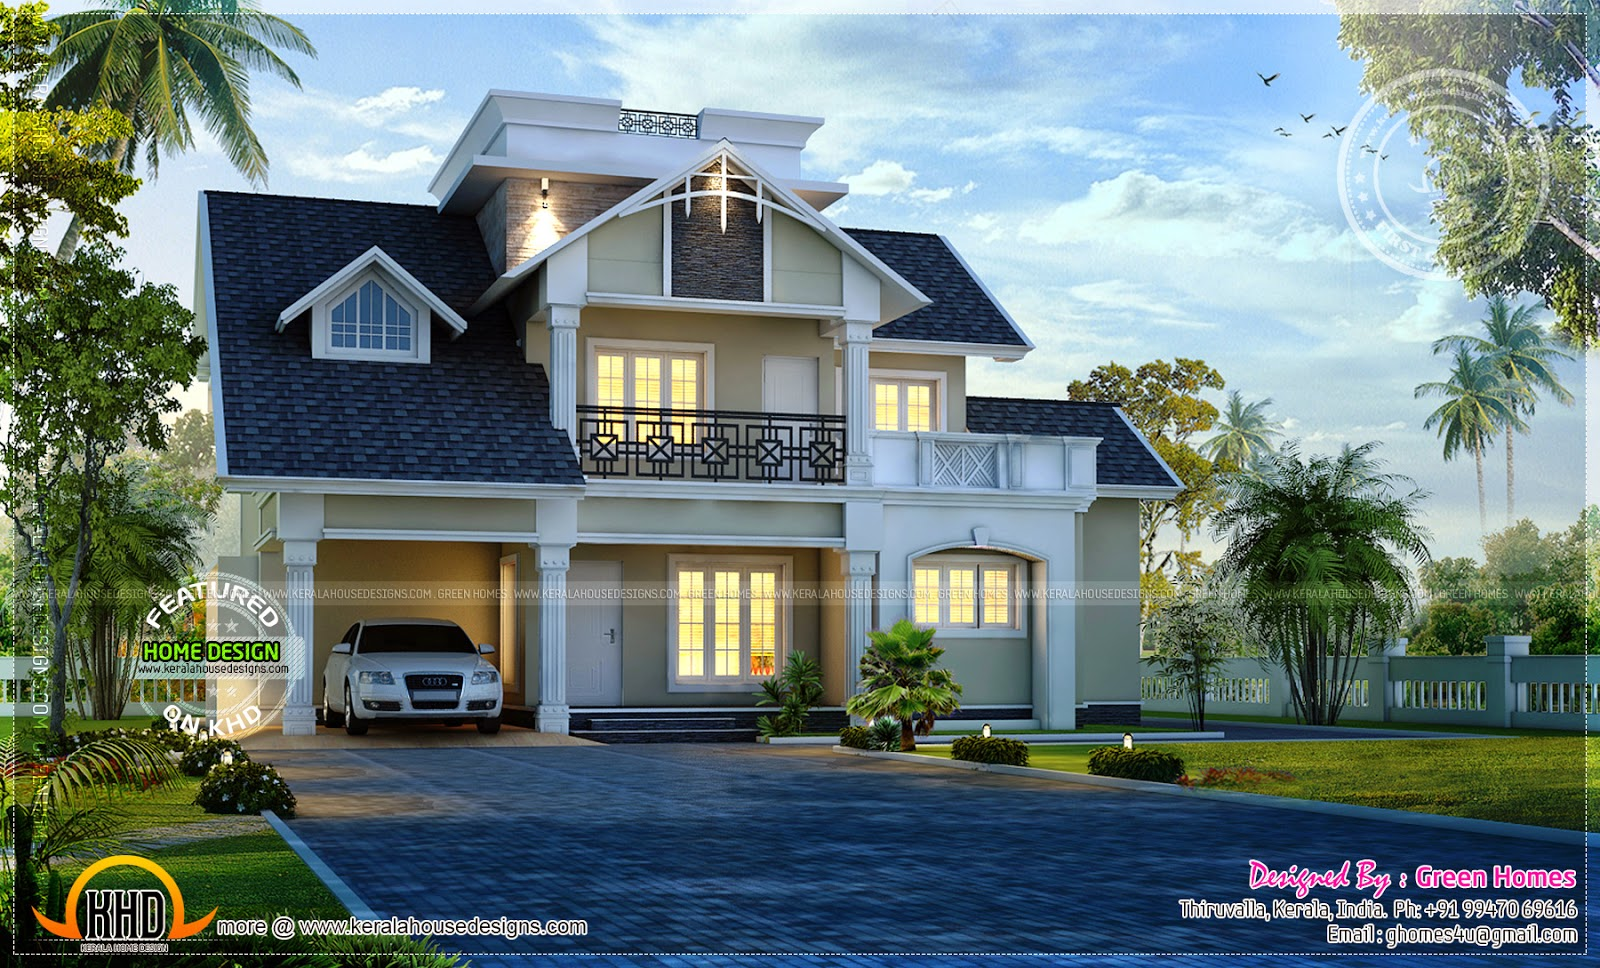 Awesome modern house exterior kerala home design and for Pics of modern houses